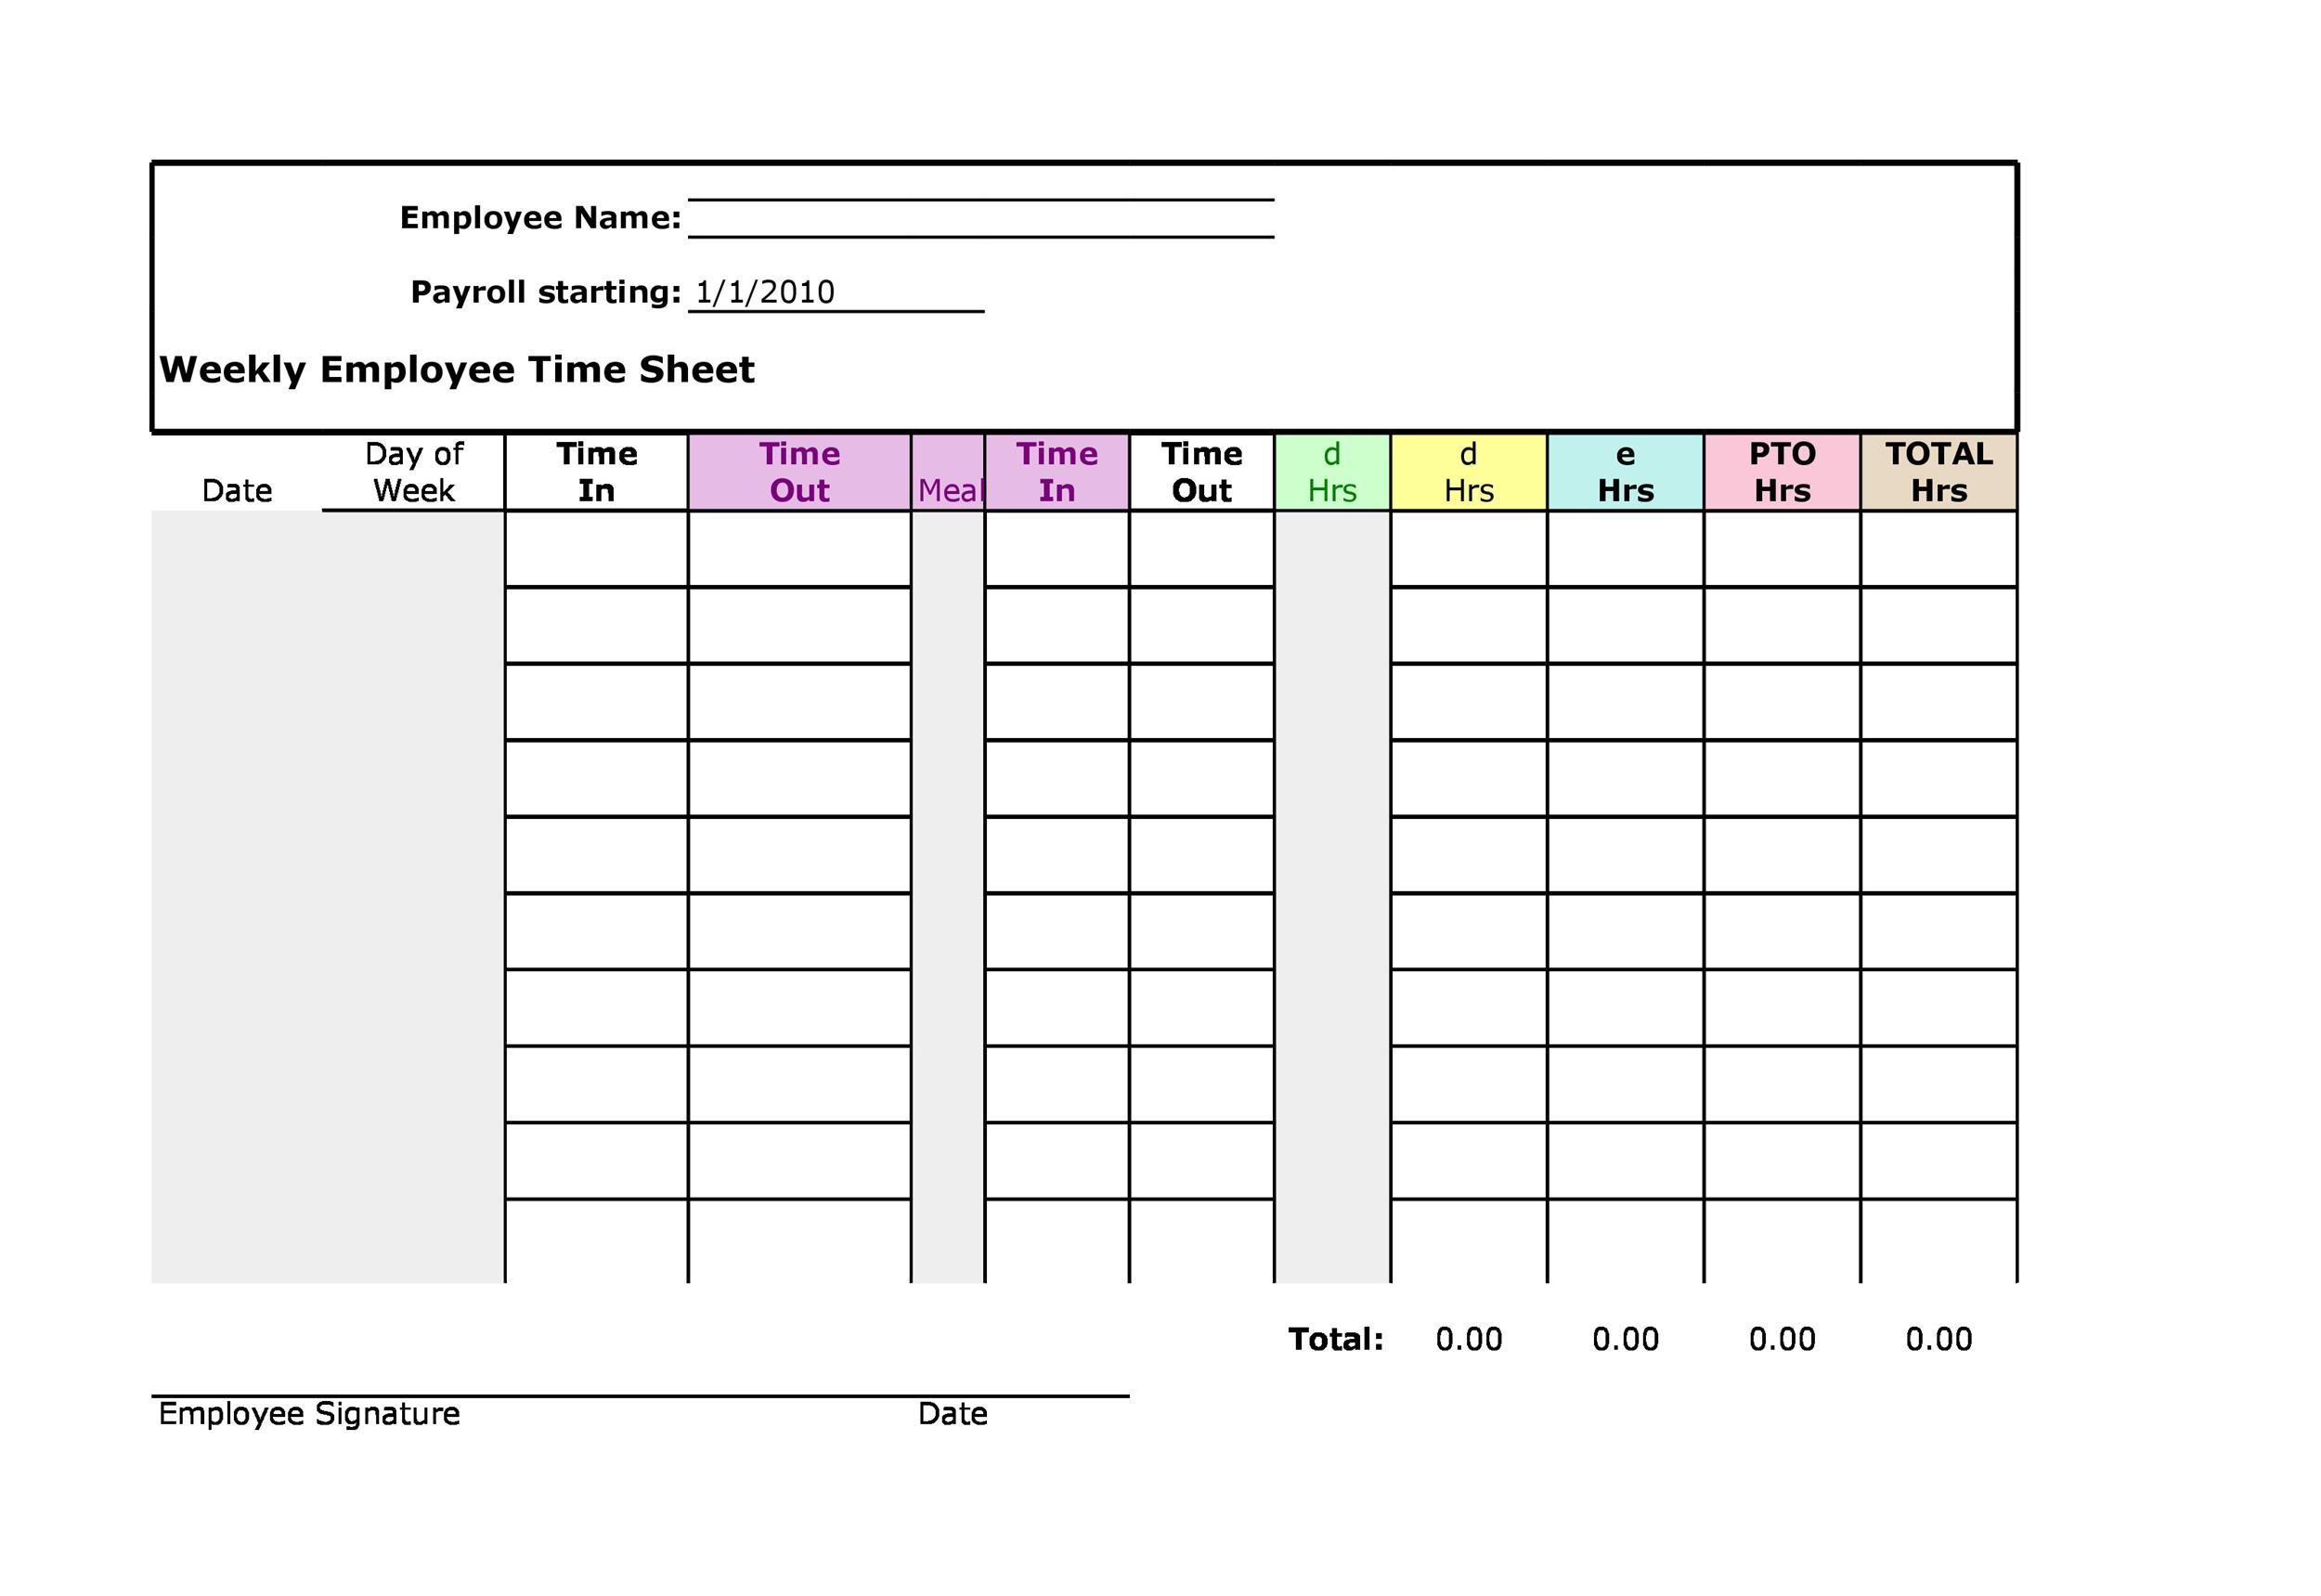 Free Timesheet Time Card Templates Template Lab - Free weekly timesheet template